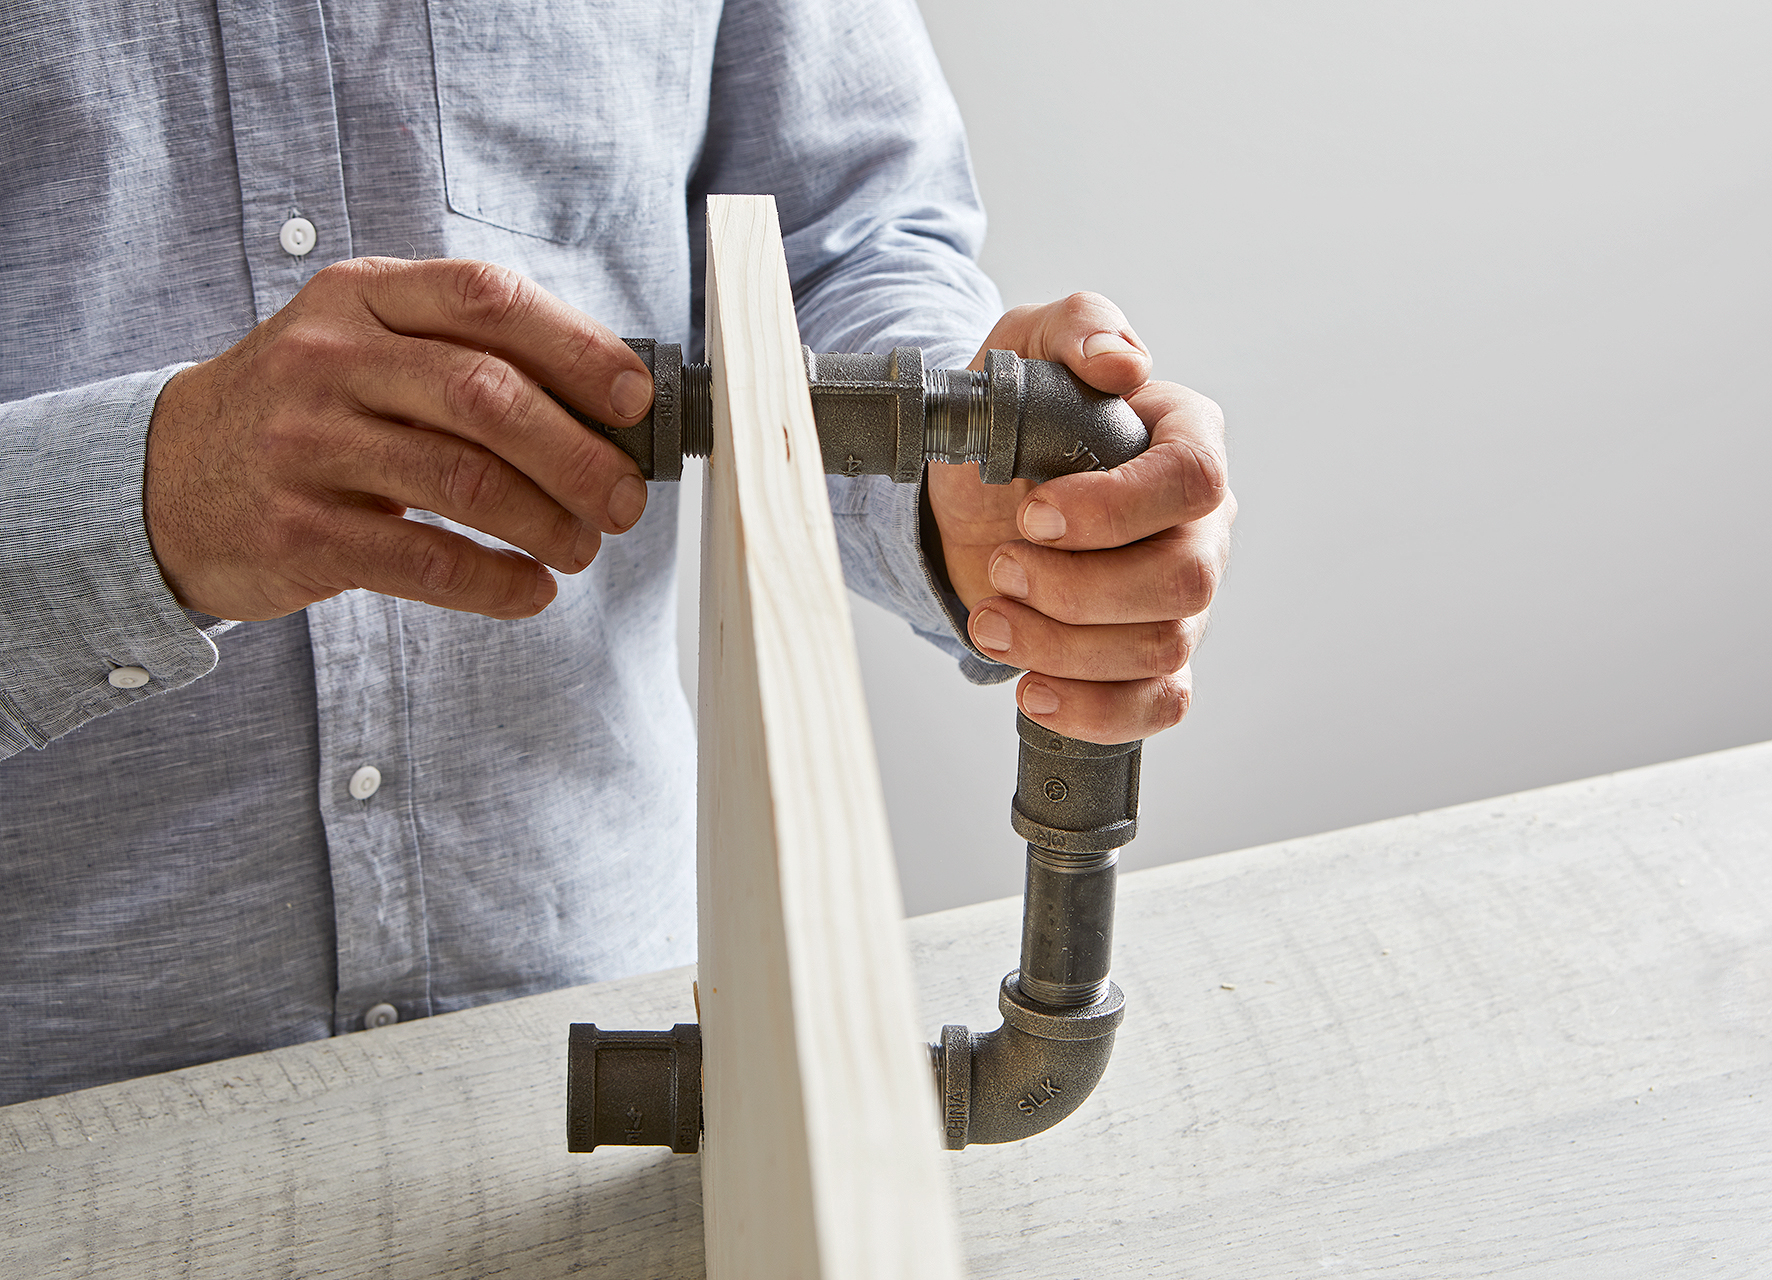 add couplings to pipe to secure handle